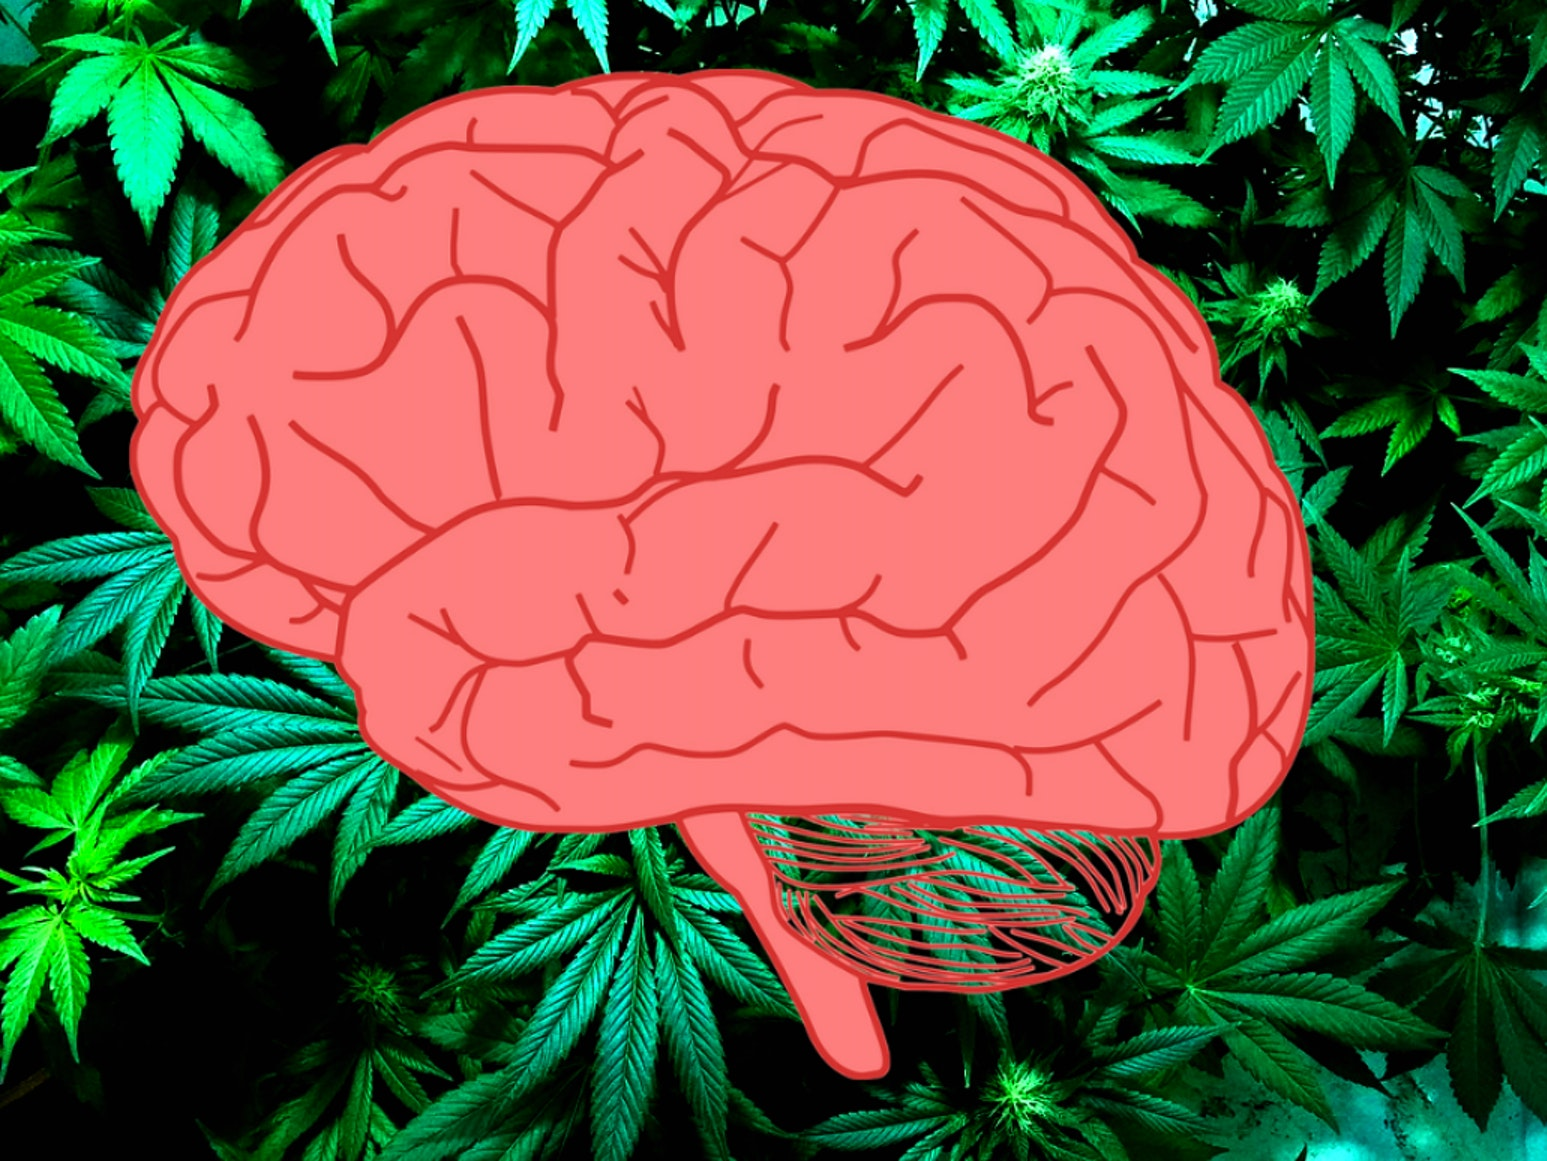 Pharmaceutical companies are developing marijuana treatments for brain cancer.